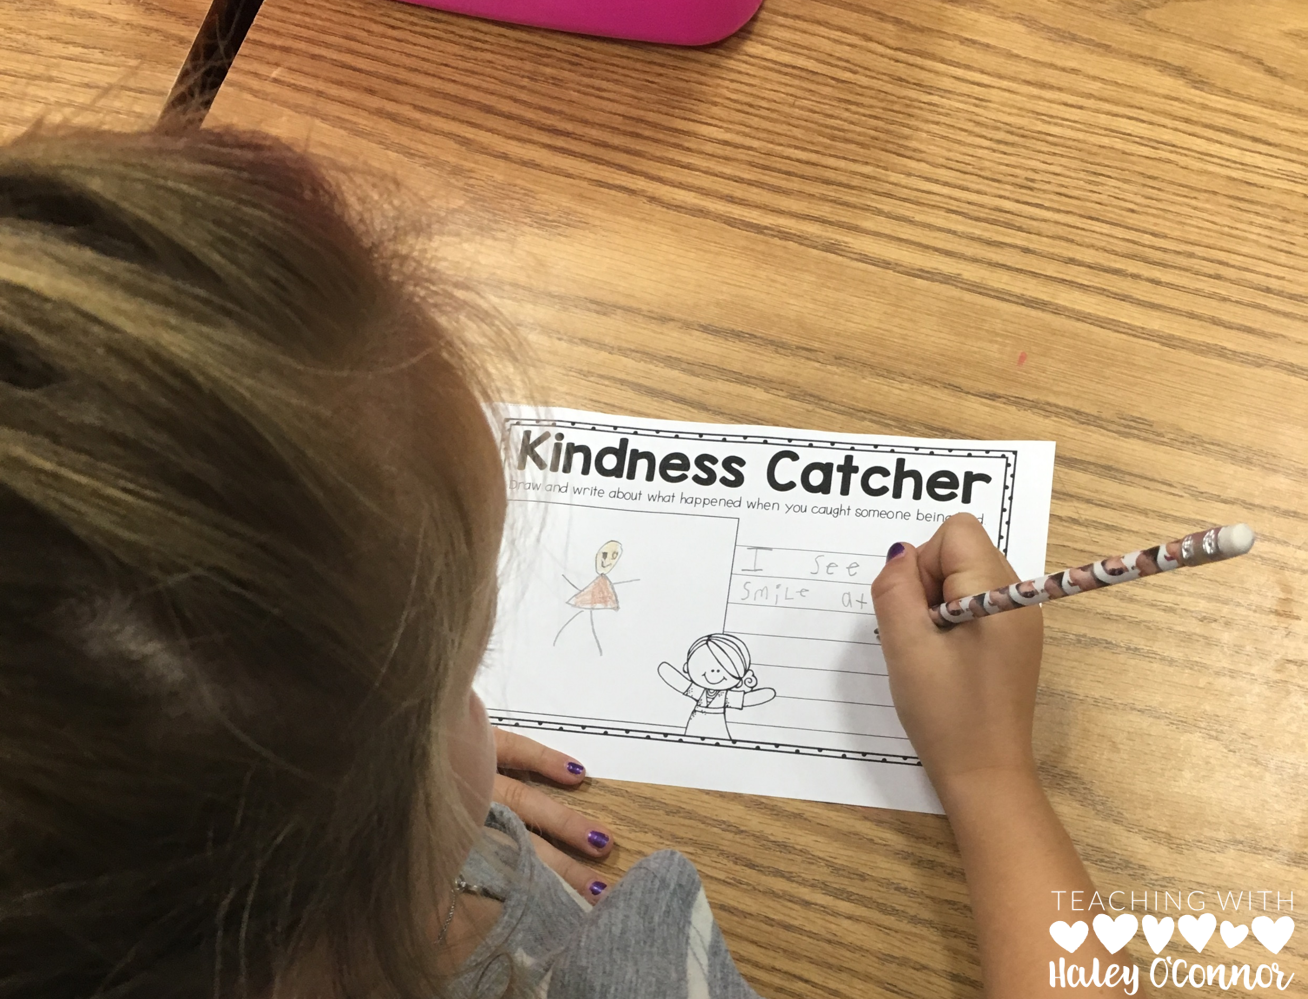 Kindness Catcher Note Classroom